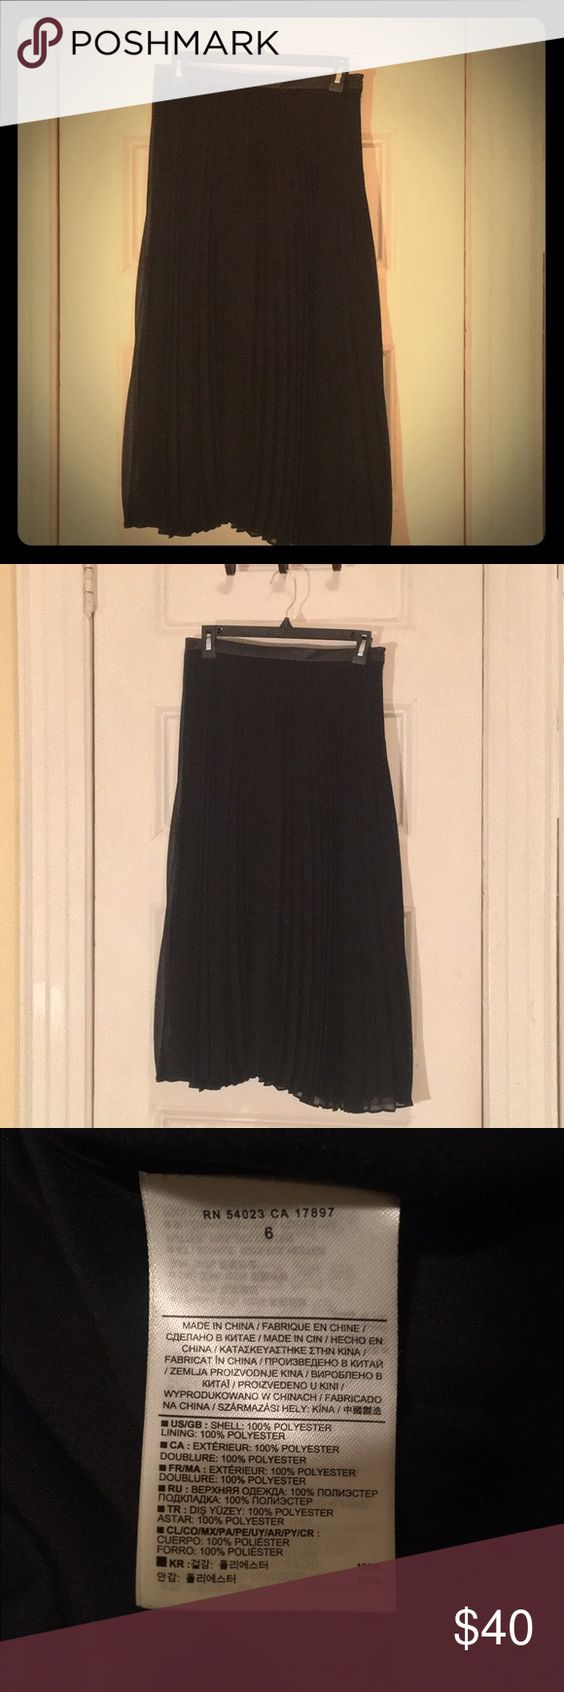 Banana Republic Pleated Midi Skirt This is such a chic skirt to pair with some kitten heels, or high-heeled pumps. Great for the office, but also an easy day-evening transition piece. Lightweight enough to transition from winter-spring. Faux leather detail around waist. Never worn, & often forgotten. Please give this skirt a new home where it will get plenty of wear. Banana Republic Skirts Midi